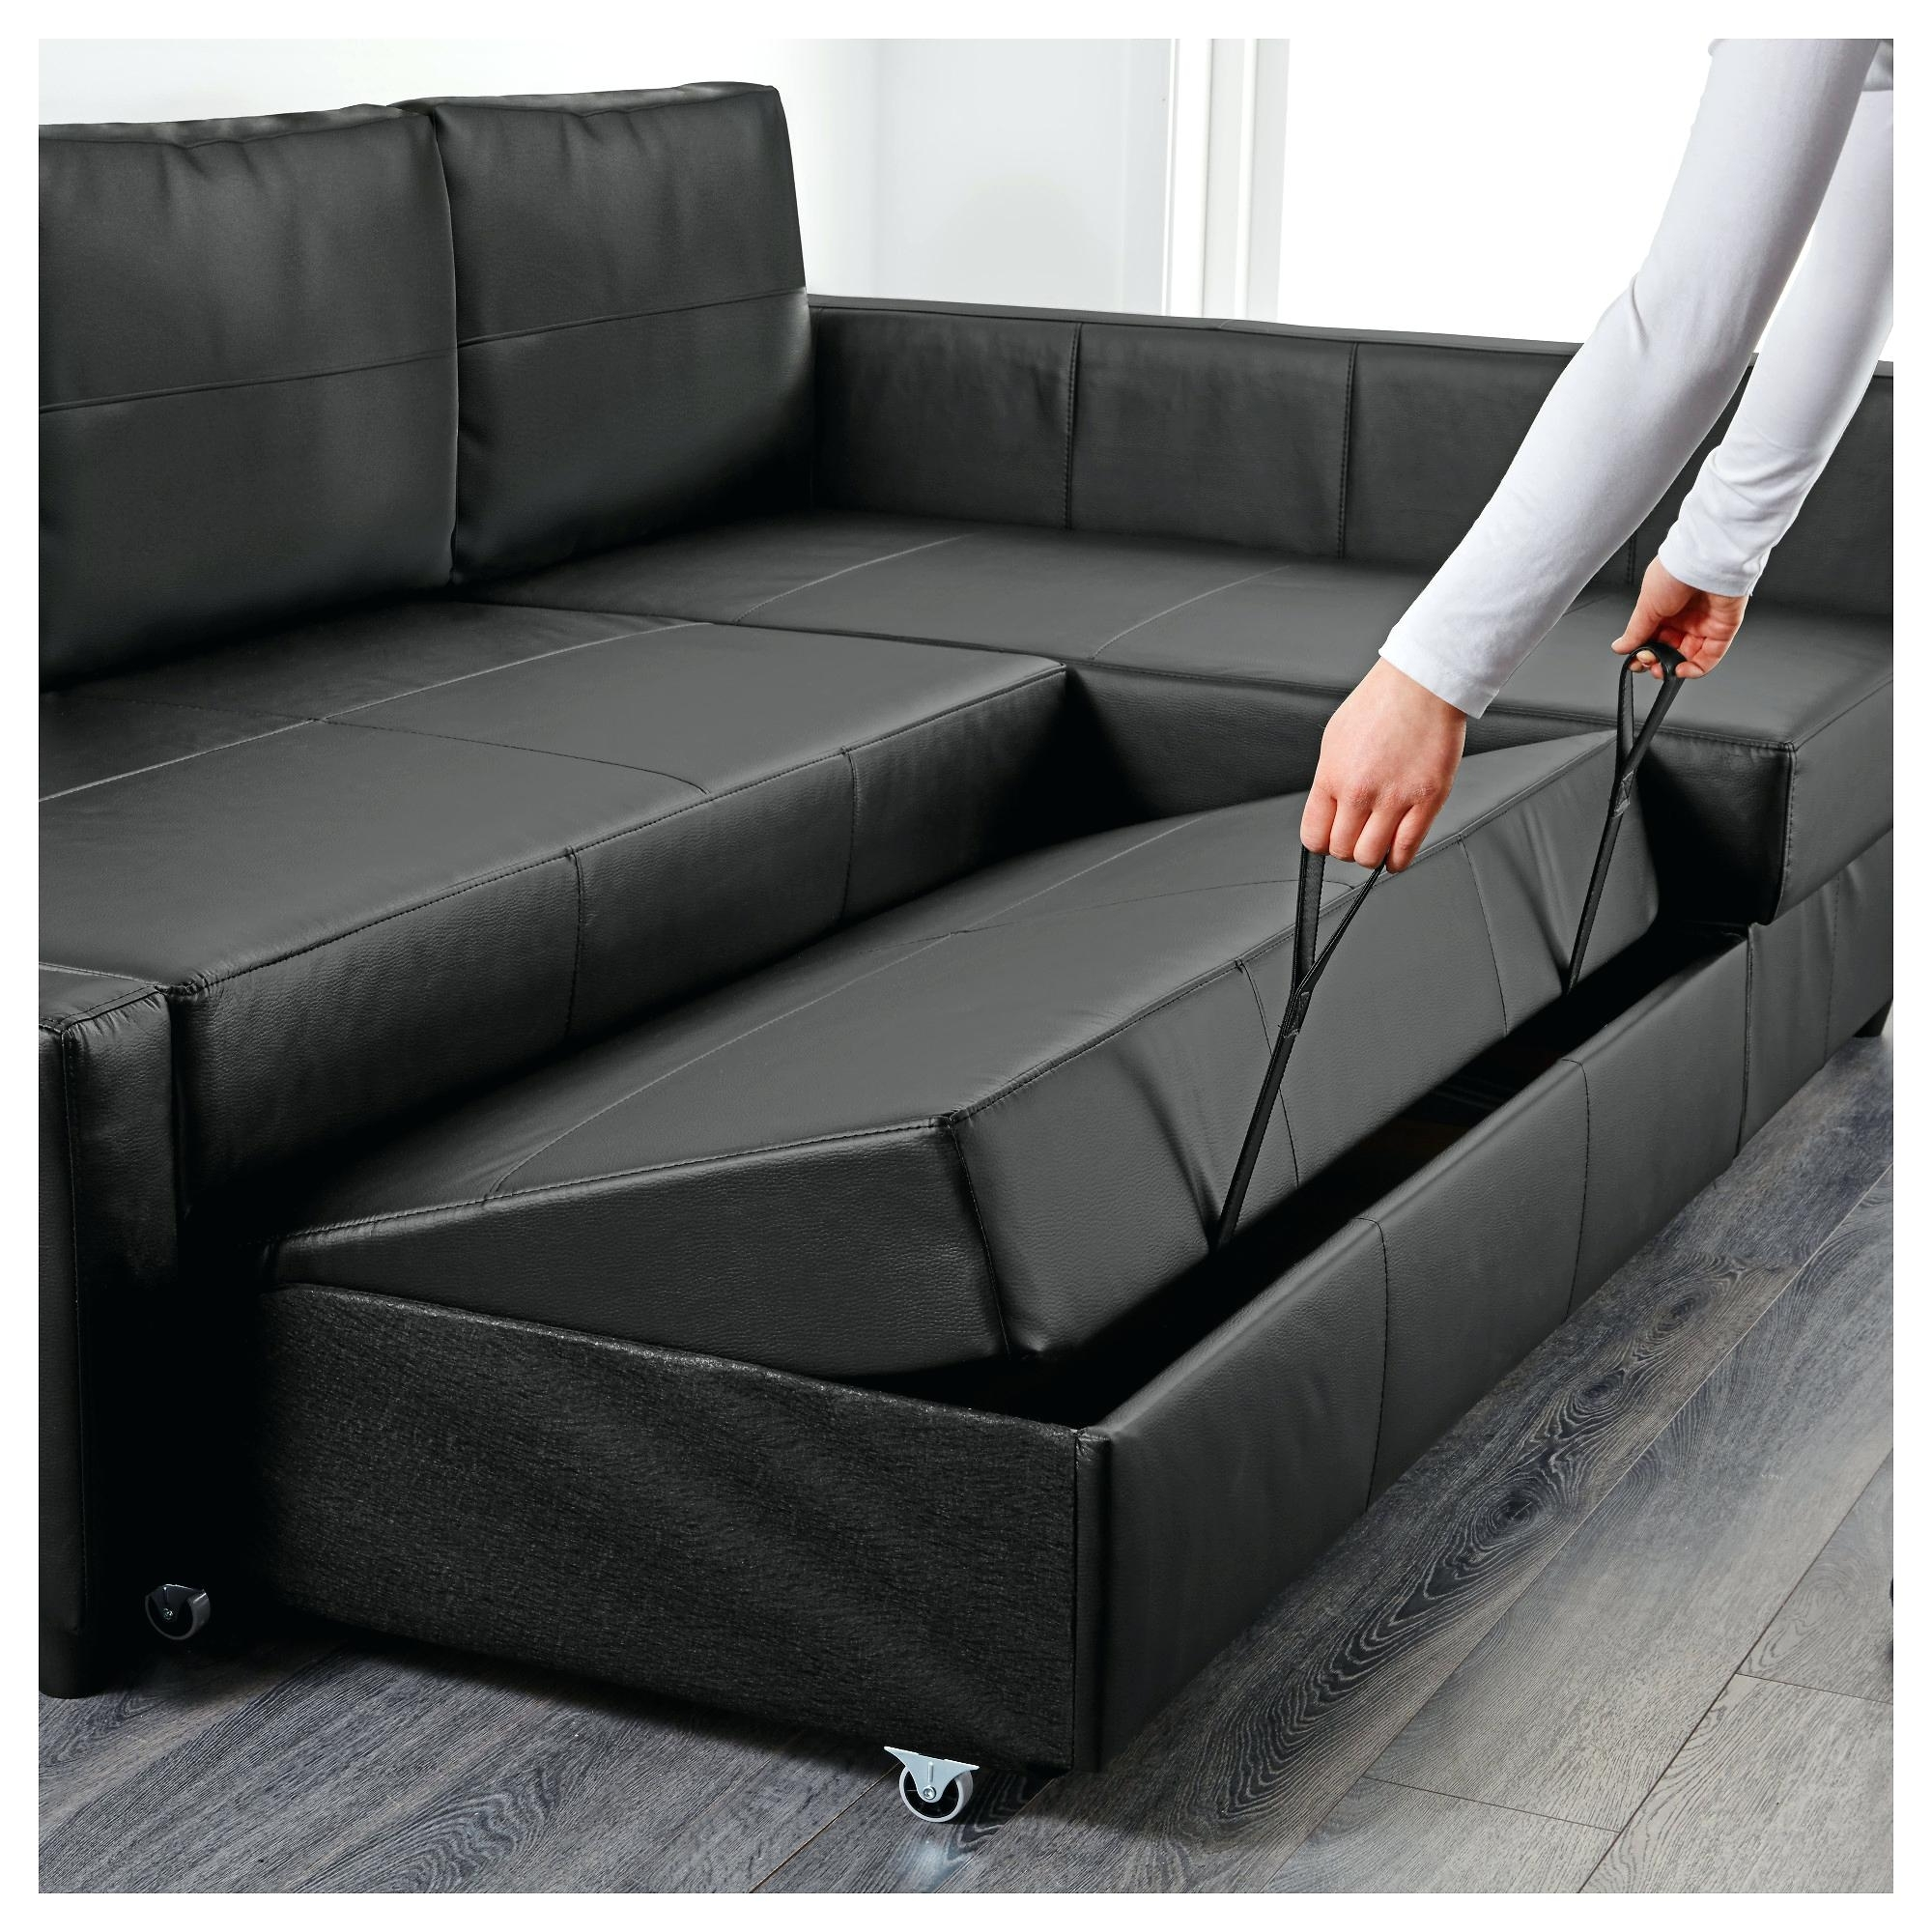 2019 Sectional Sofa Bed Halifax – Adriane With Regard To Halifax Sectional Sofas (View 8 of 20)